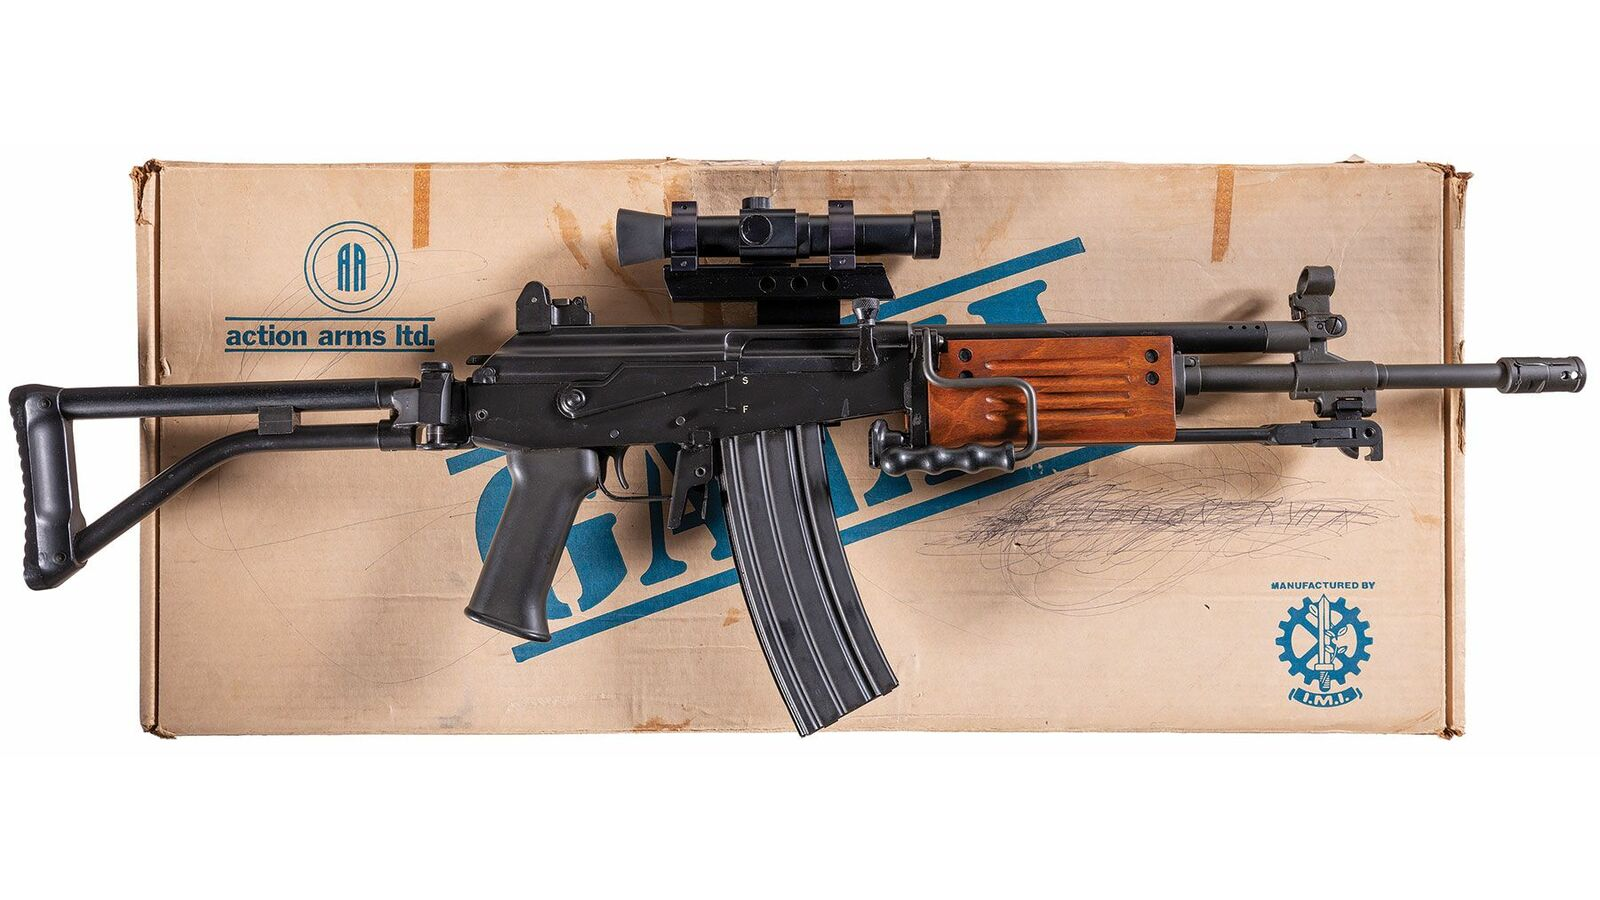 Action Arms/I M I  Model 392 Galil Semi-Automatic Rifle